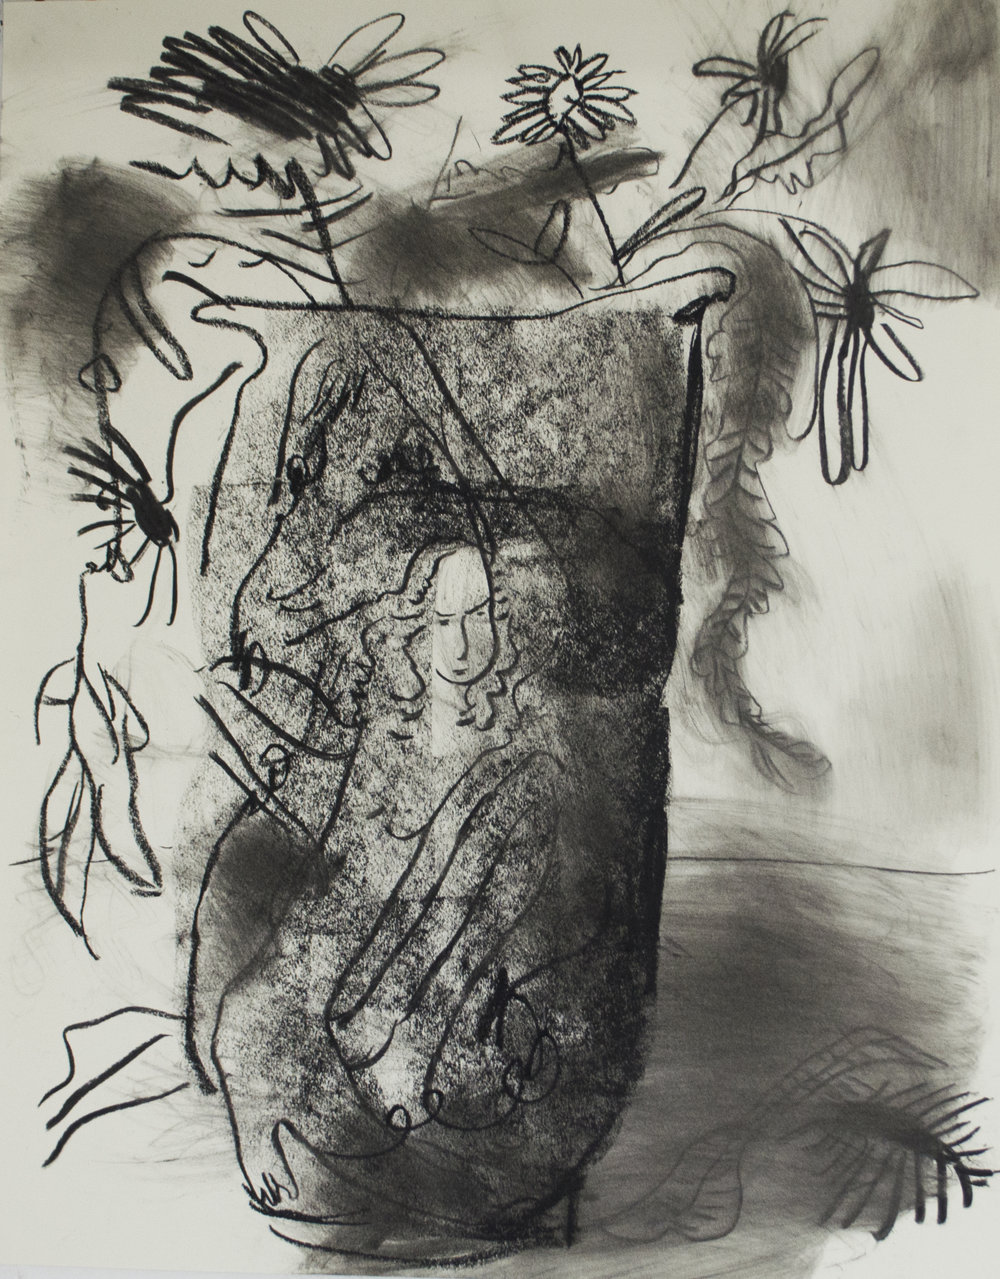 Vase, charcoal on paper, 22 x 30 inches, 2017.